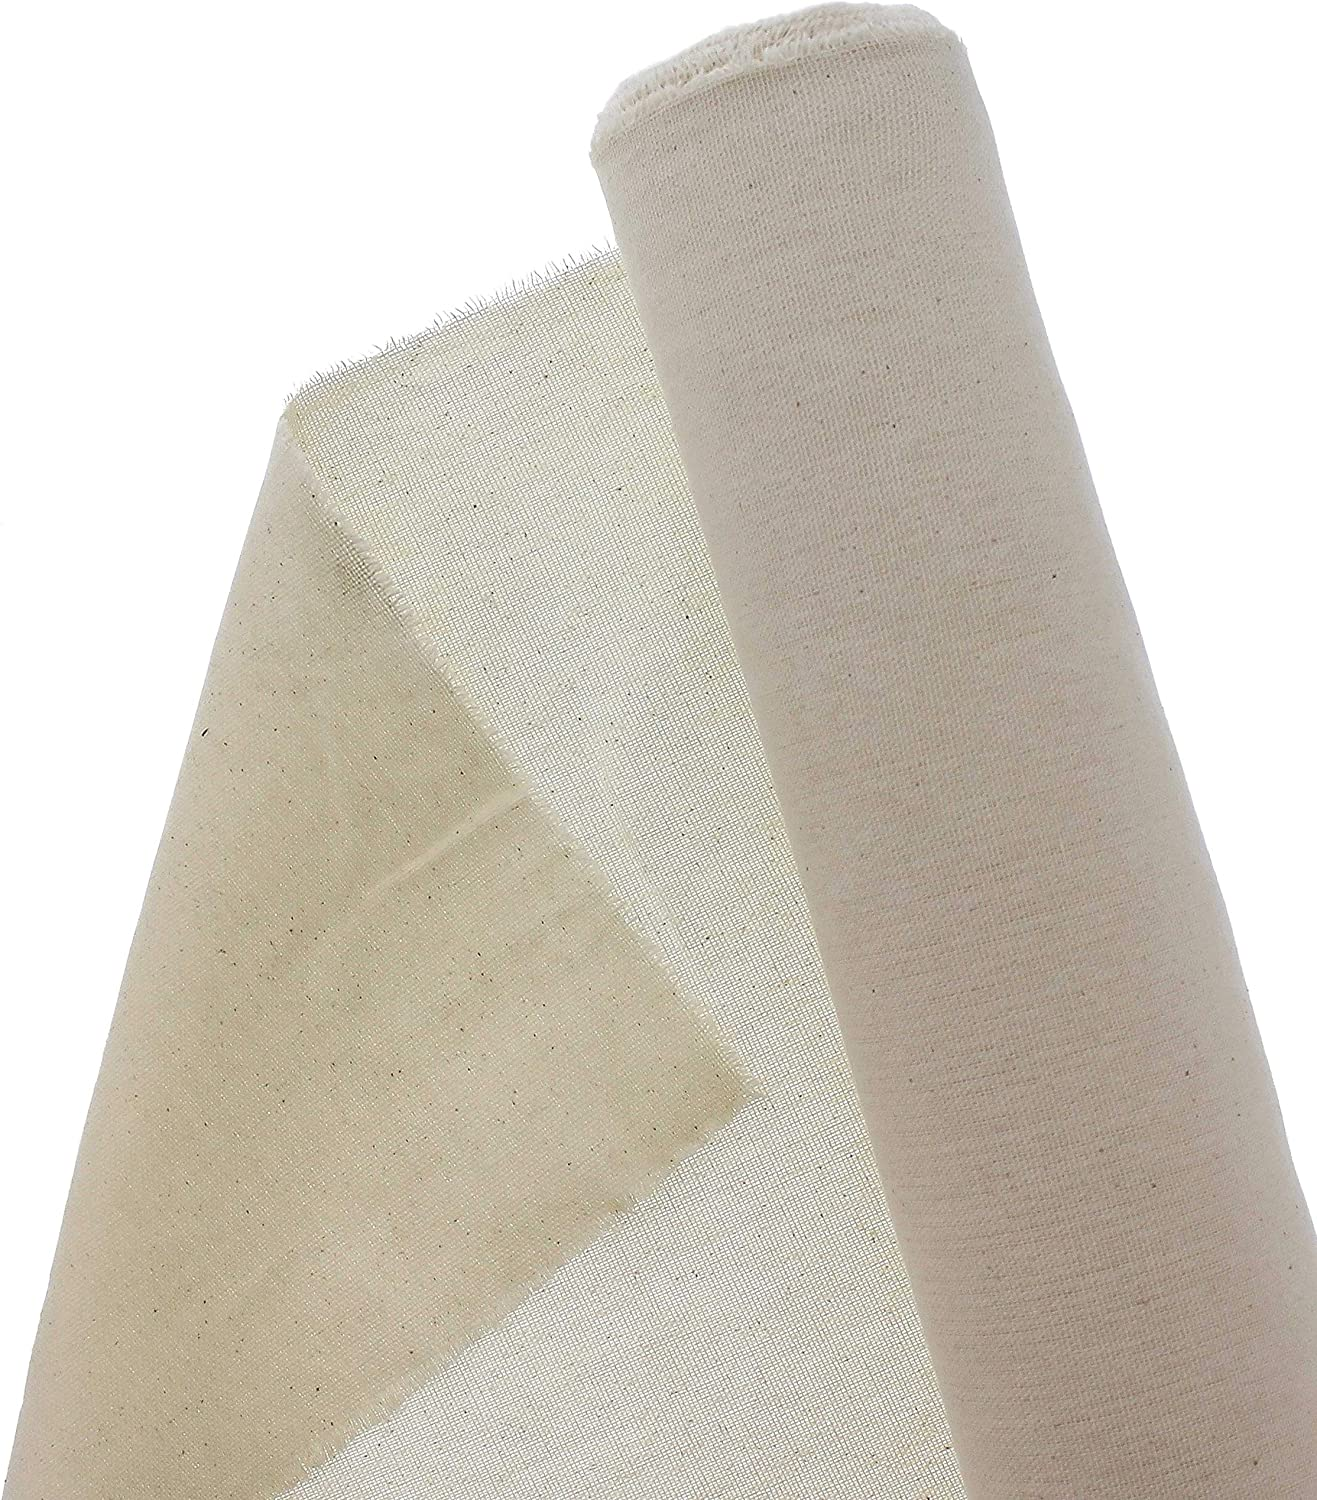 HomeTex Canada Cotton Canvas 60 Wide x 25 Meters Full Roll